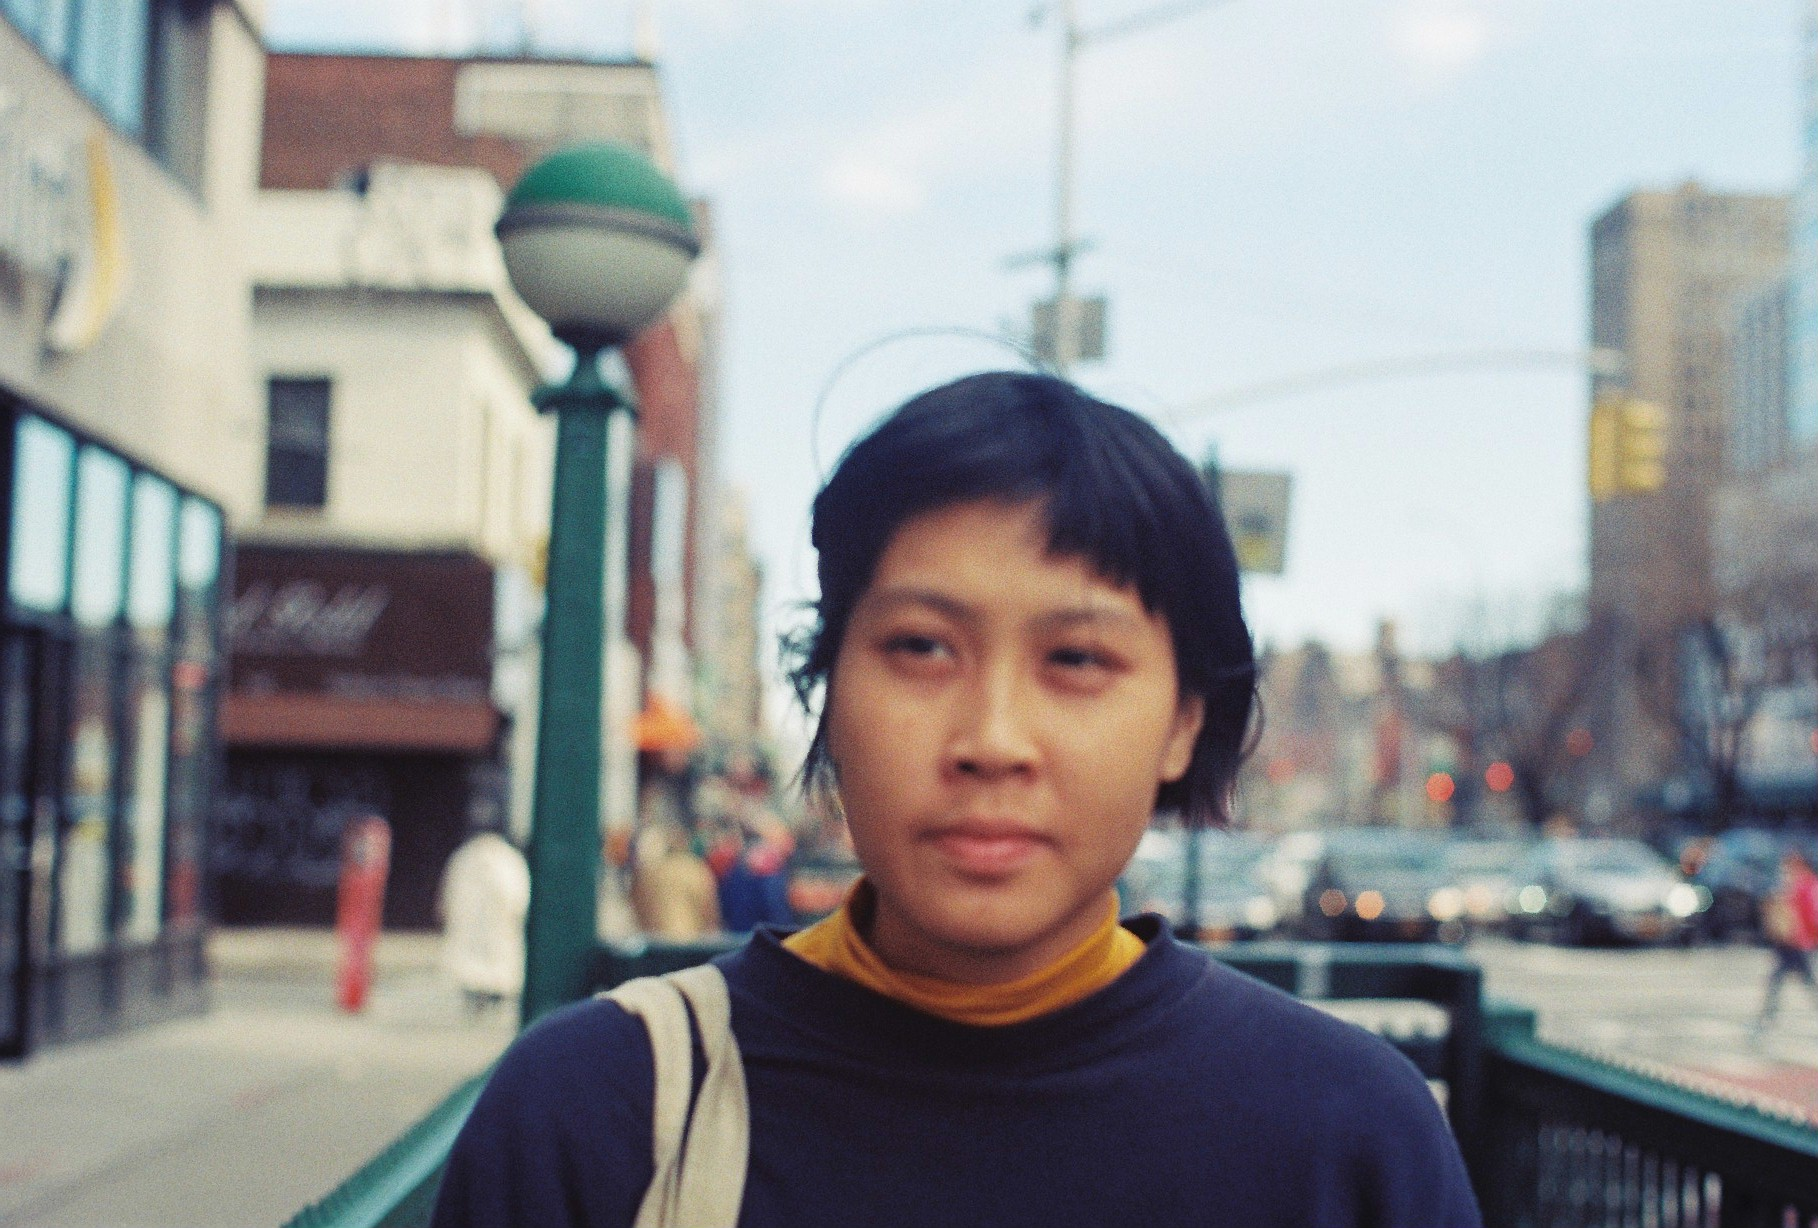 A headshot of Thao Ly, taken on the street. Thao is wearing a dark blue sweater and has a light coloured tote over her right shoulder. Thao looks off camera to the left. The street is blurred behind her.